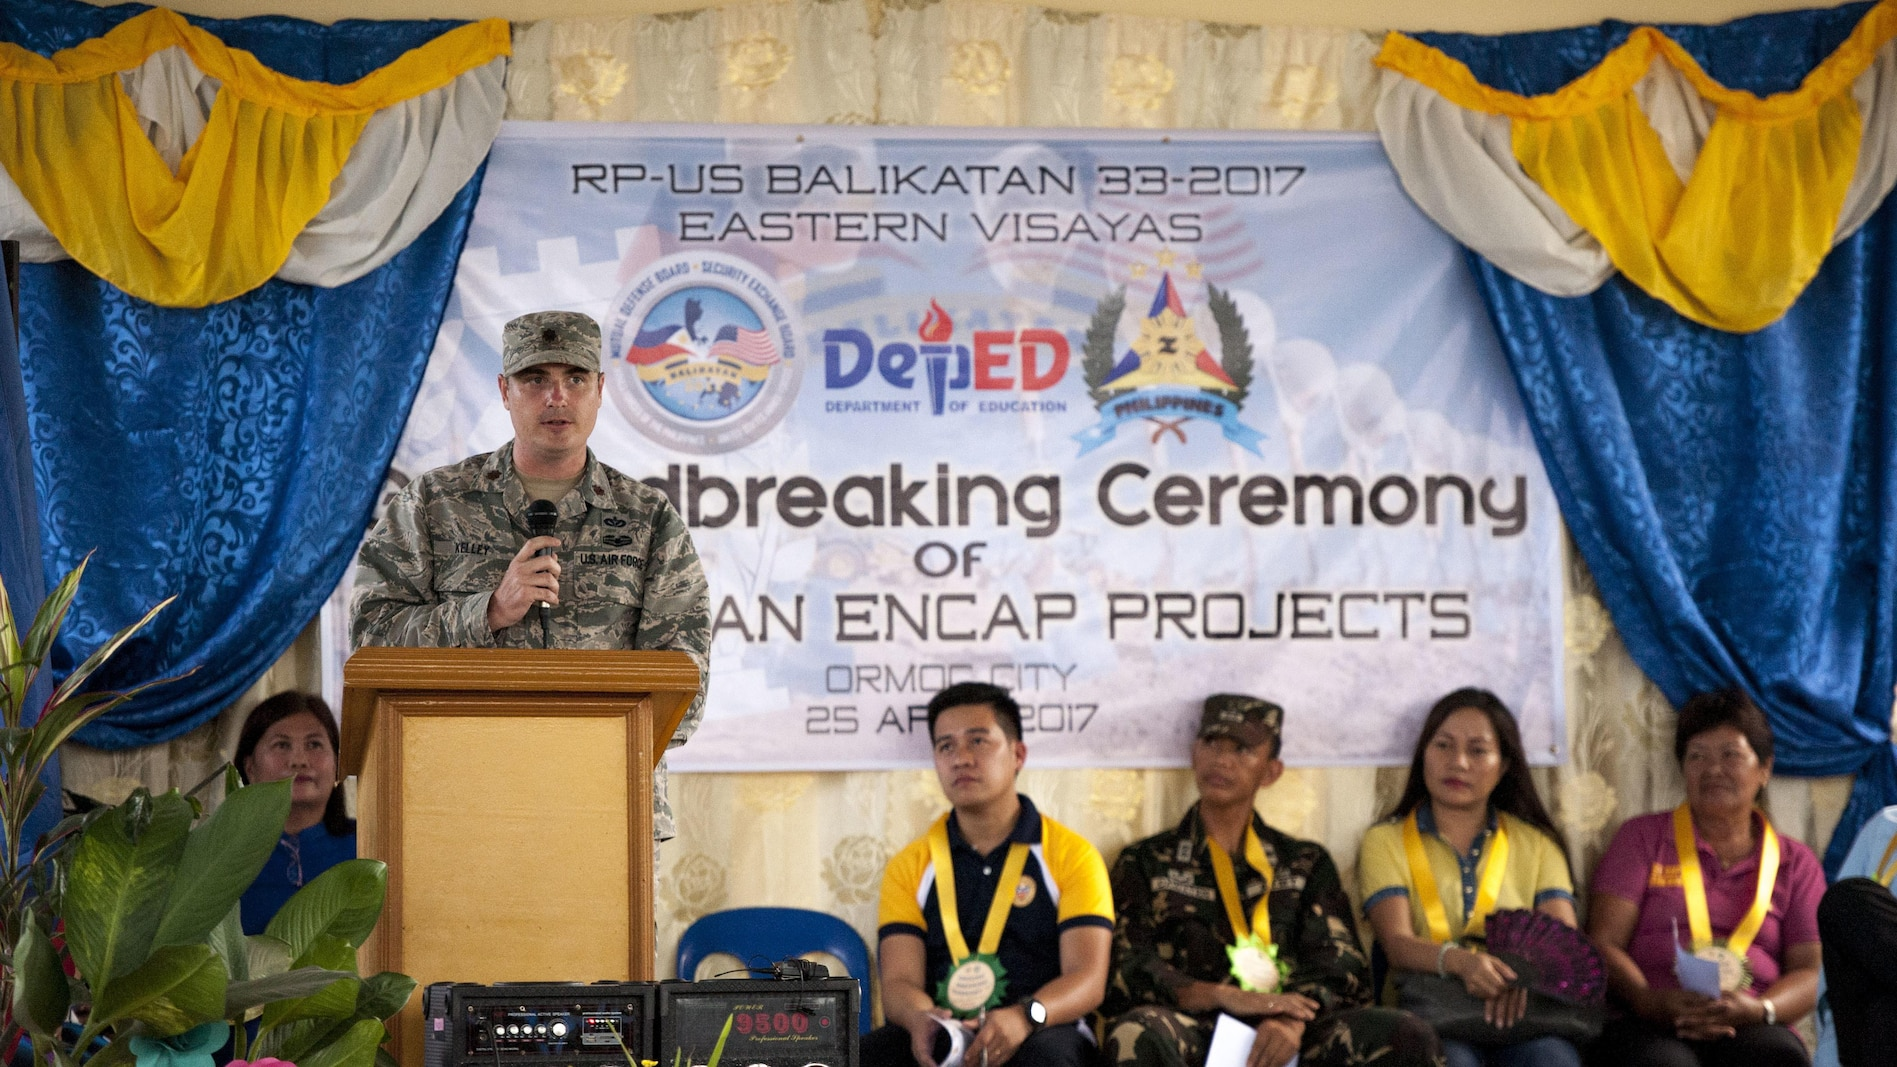 U.S. Air Force Maj. Scott Kelly speaks to local residents during a groundbreaking ceremony for Balikatan 2017 in Ormoc City, Leyte, April 25, 2017.